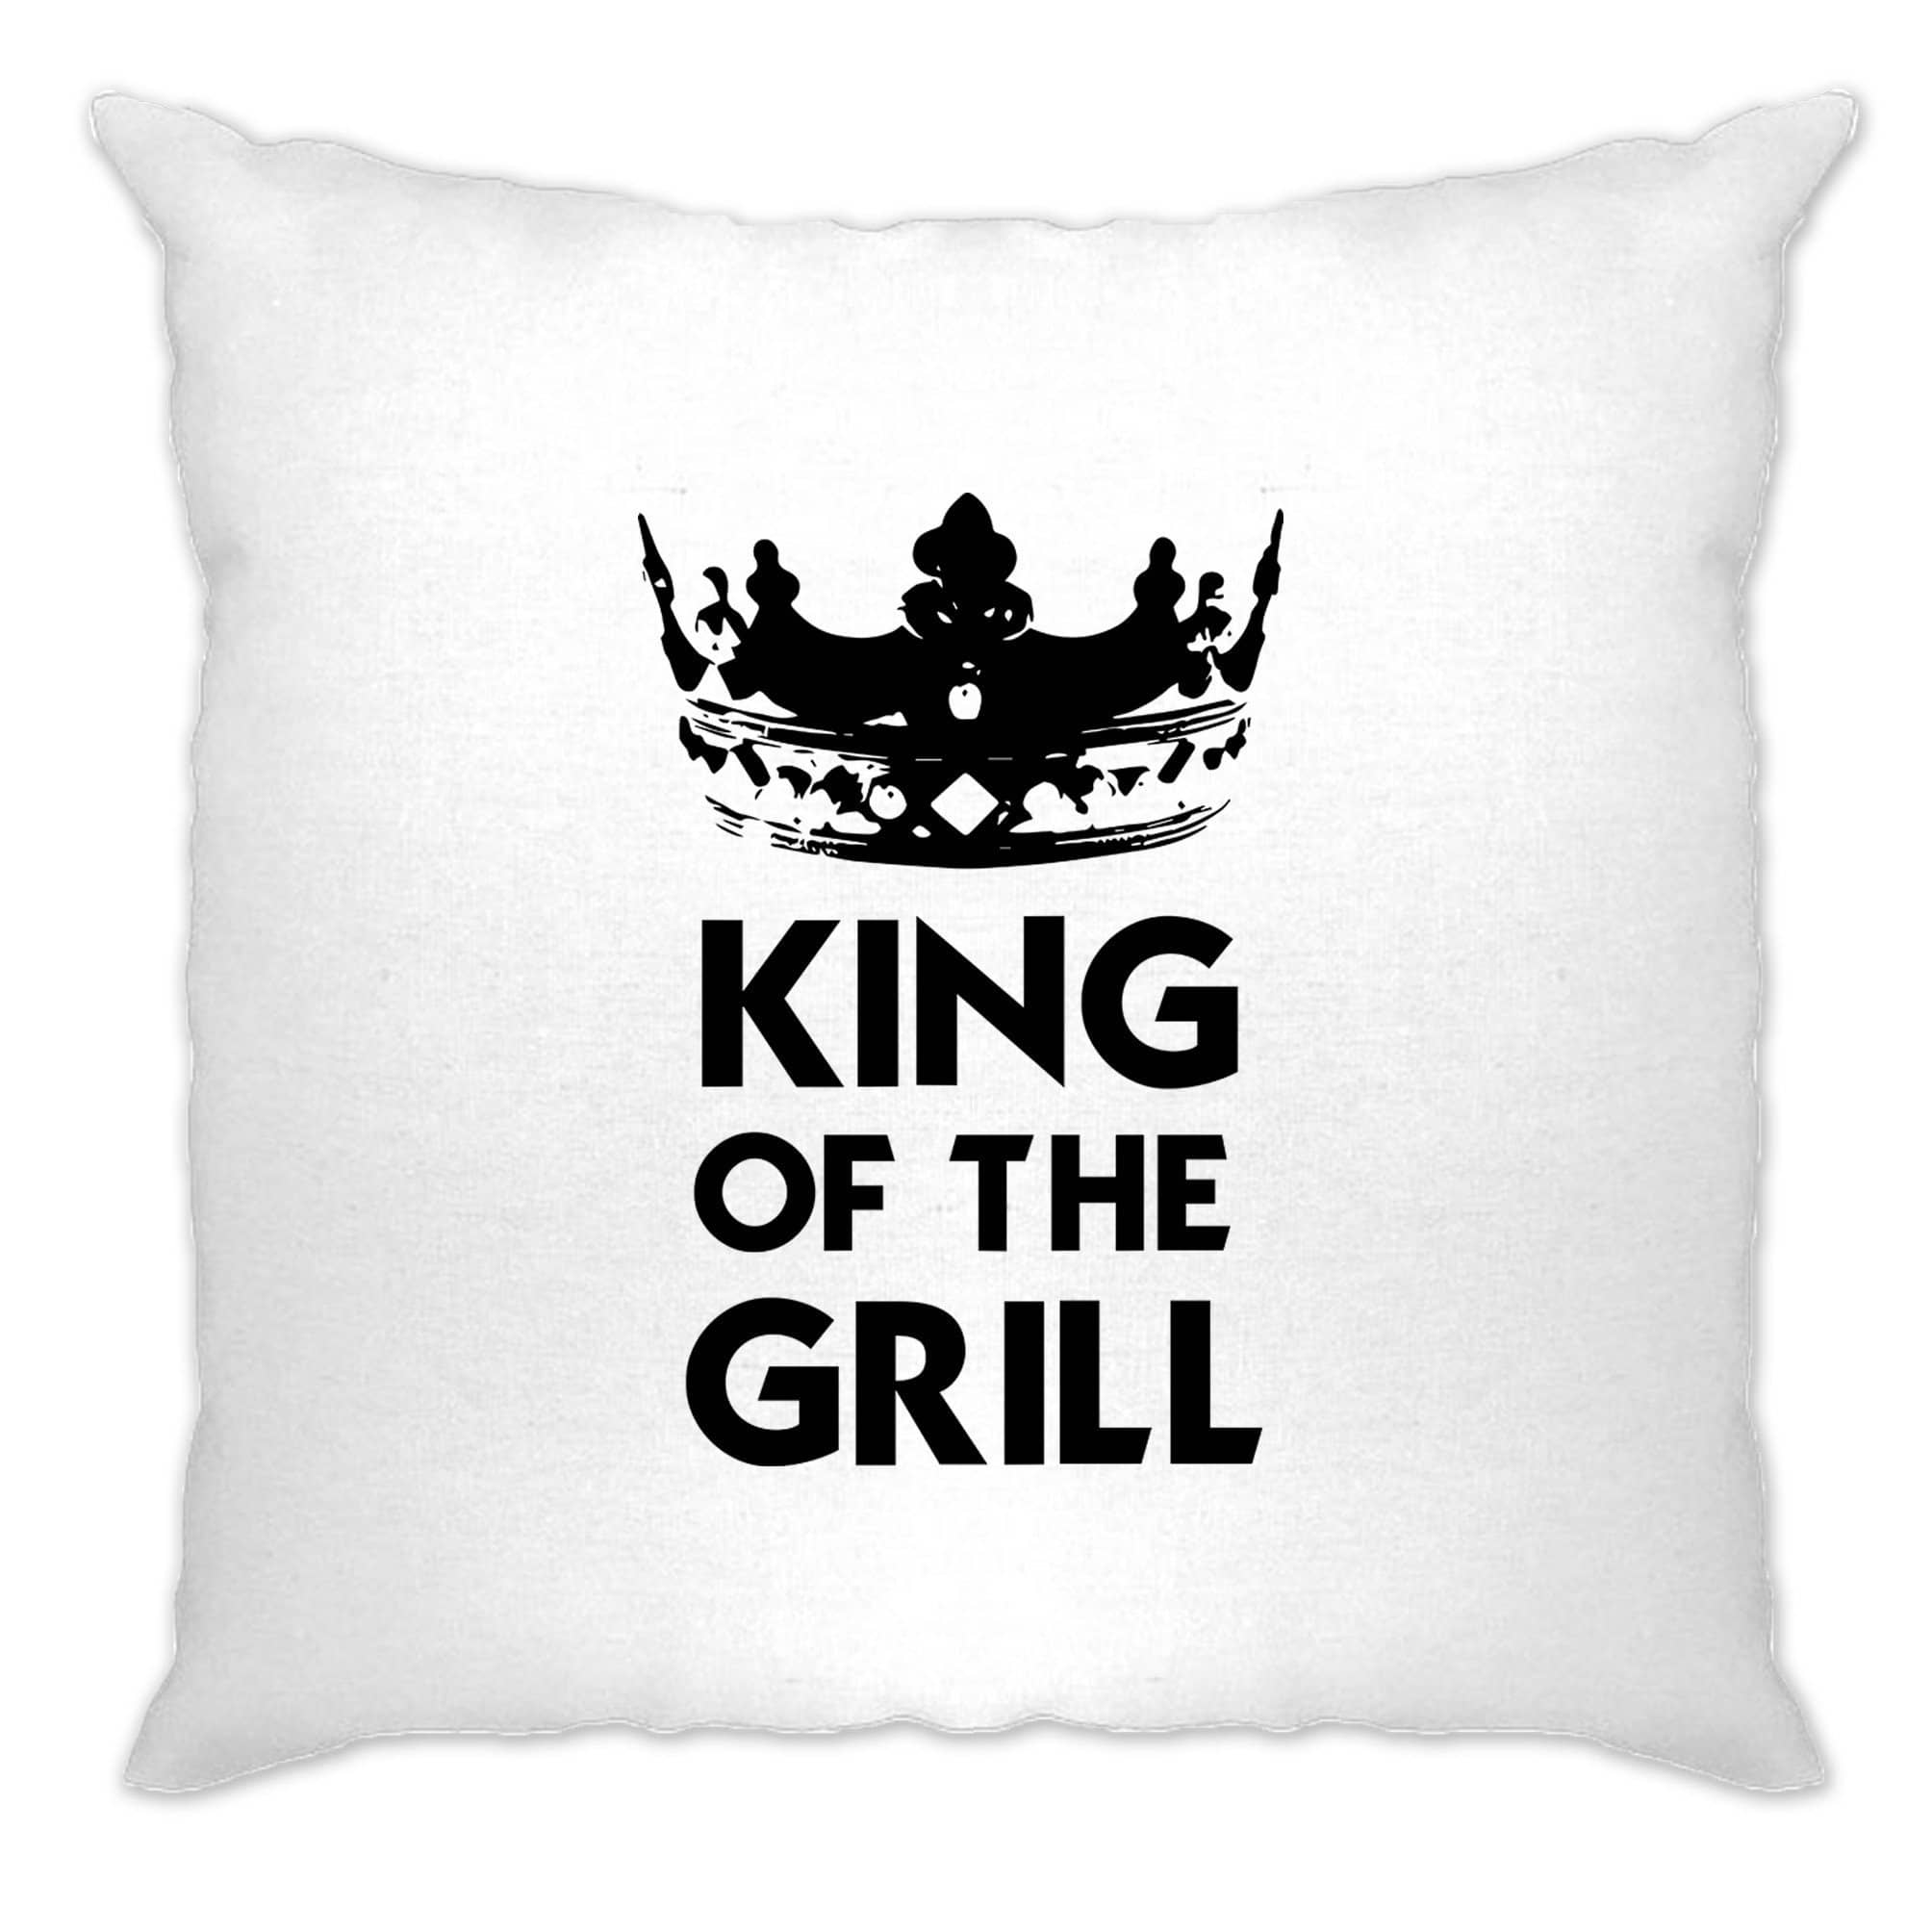 Novelty Cooking Cushion Cover King Of The Grill Slogan